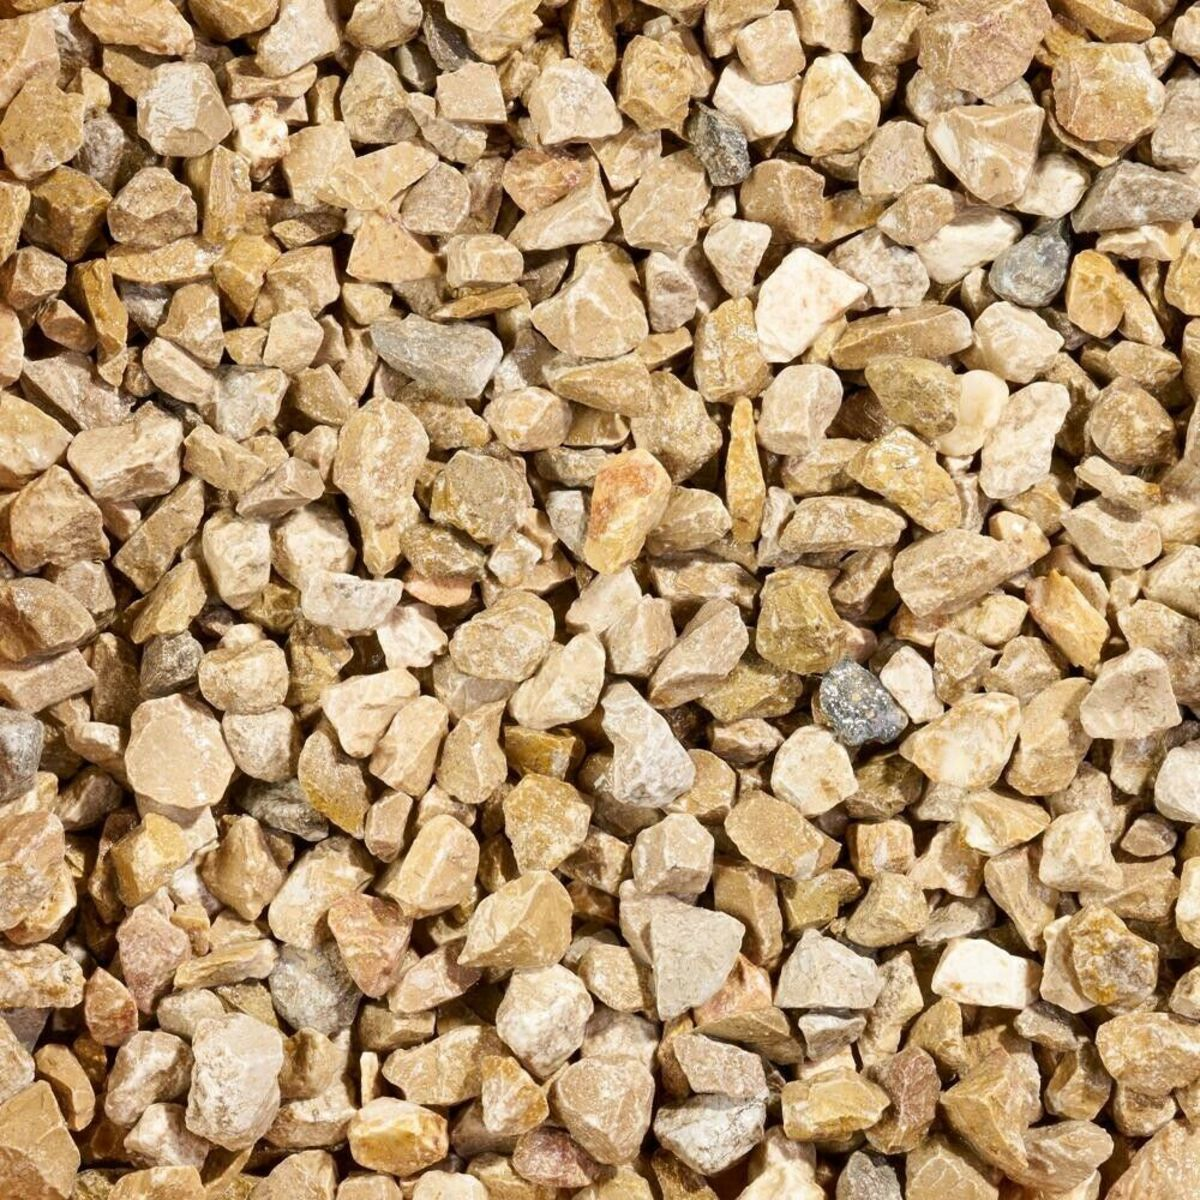 Decorative stone mulch is great for landscaping around trees, shrubs, decks, driveways and other areas. It can help prevent erosion and retain moisture in the soil.